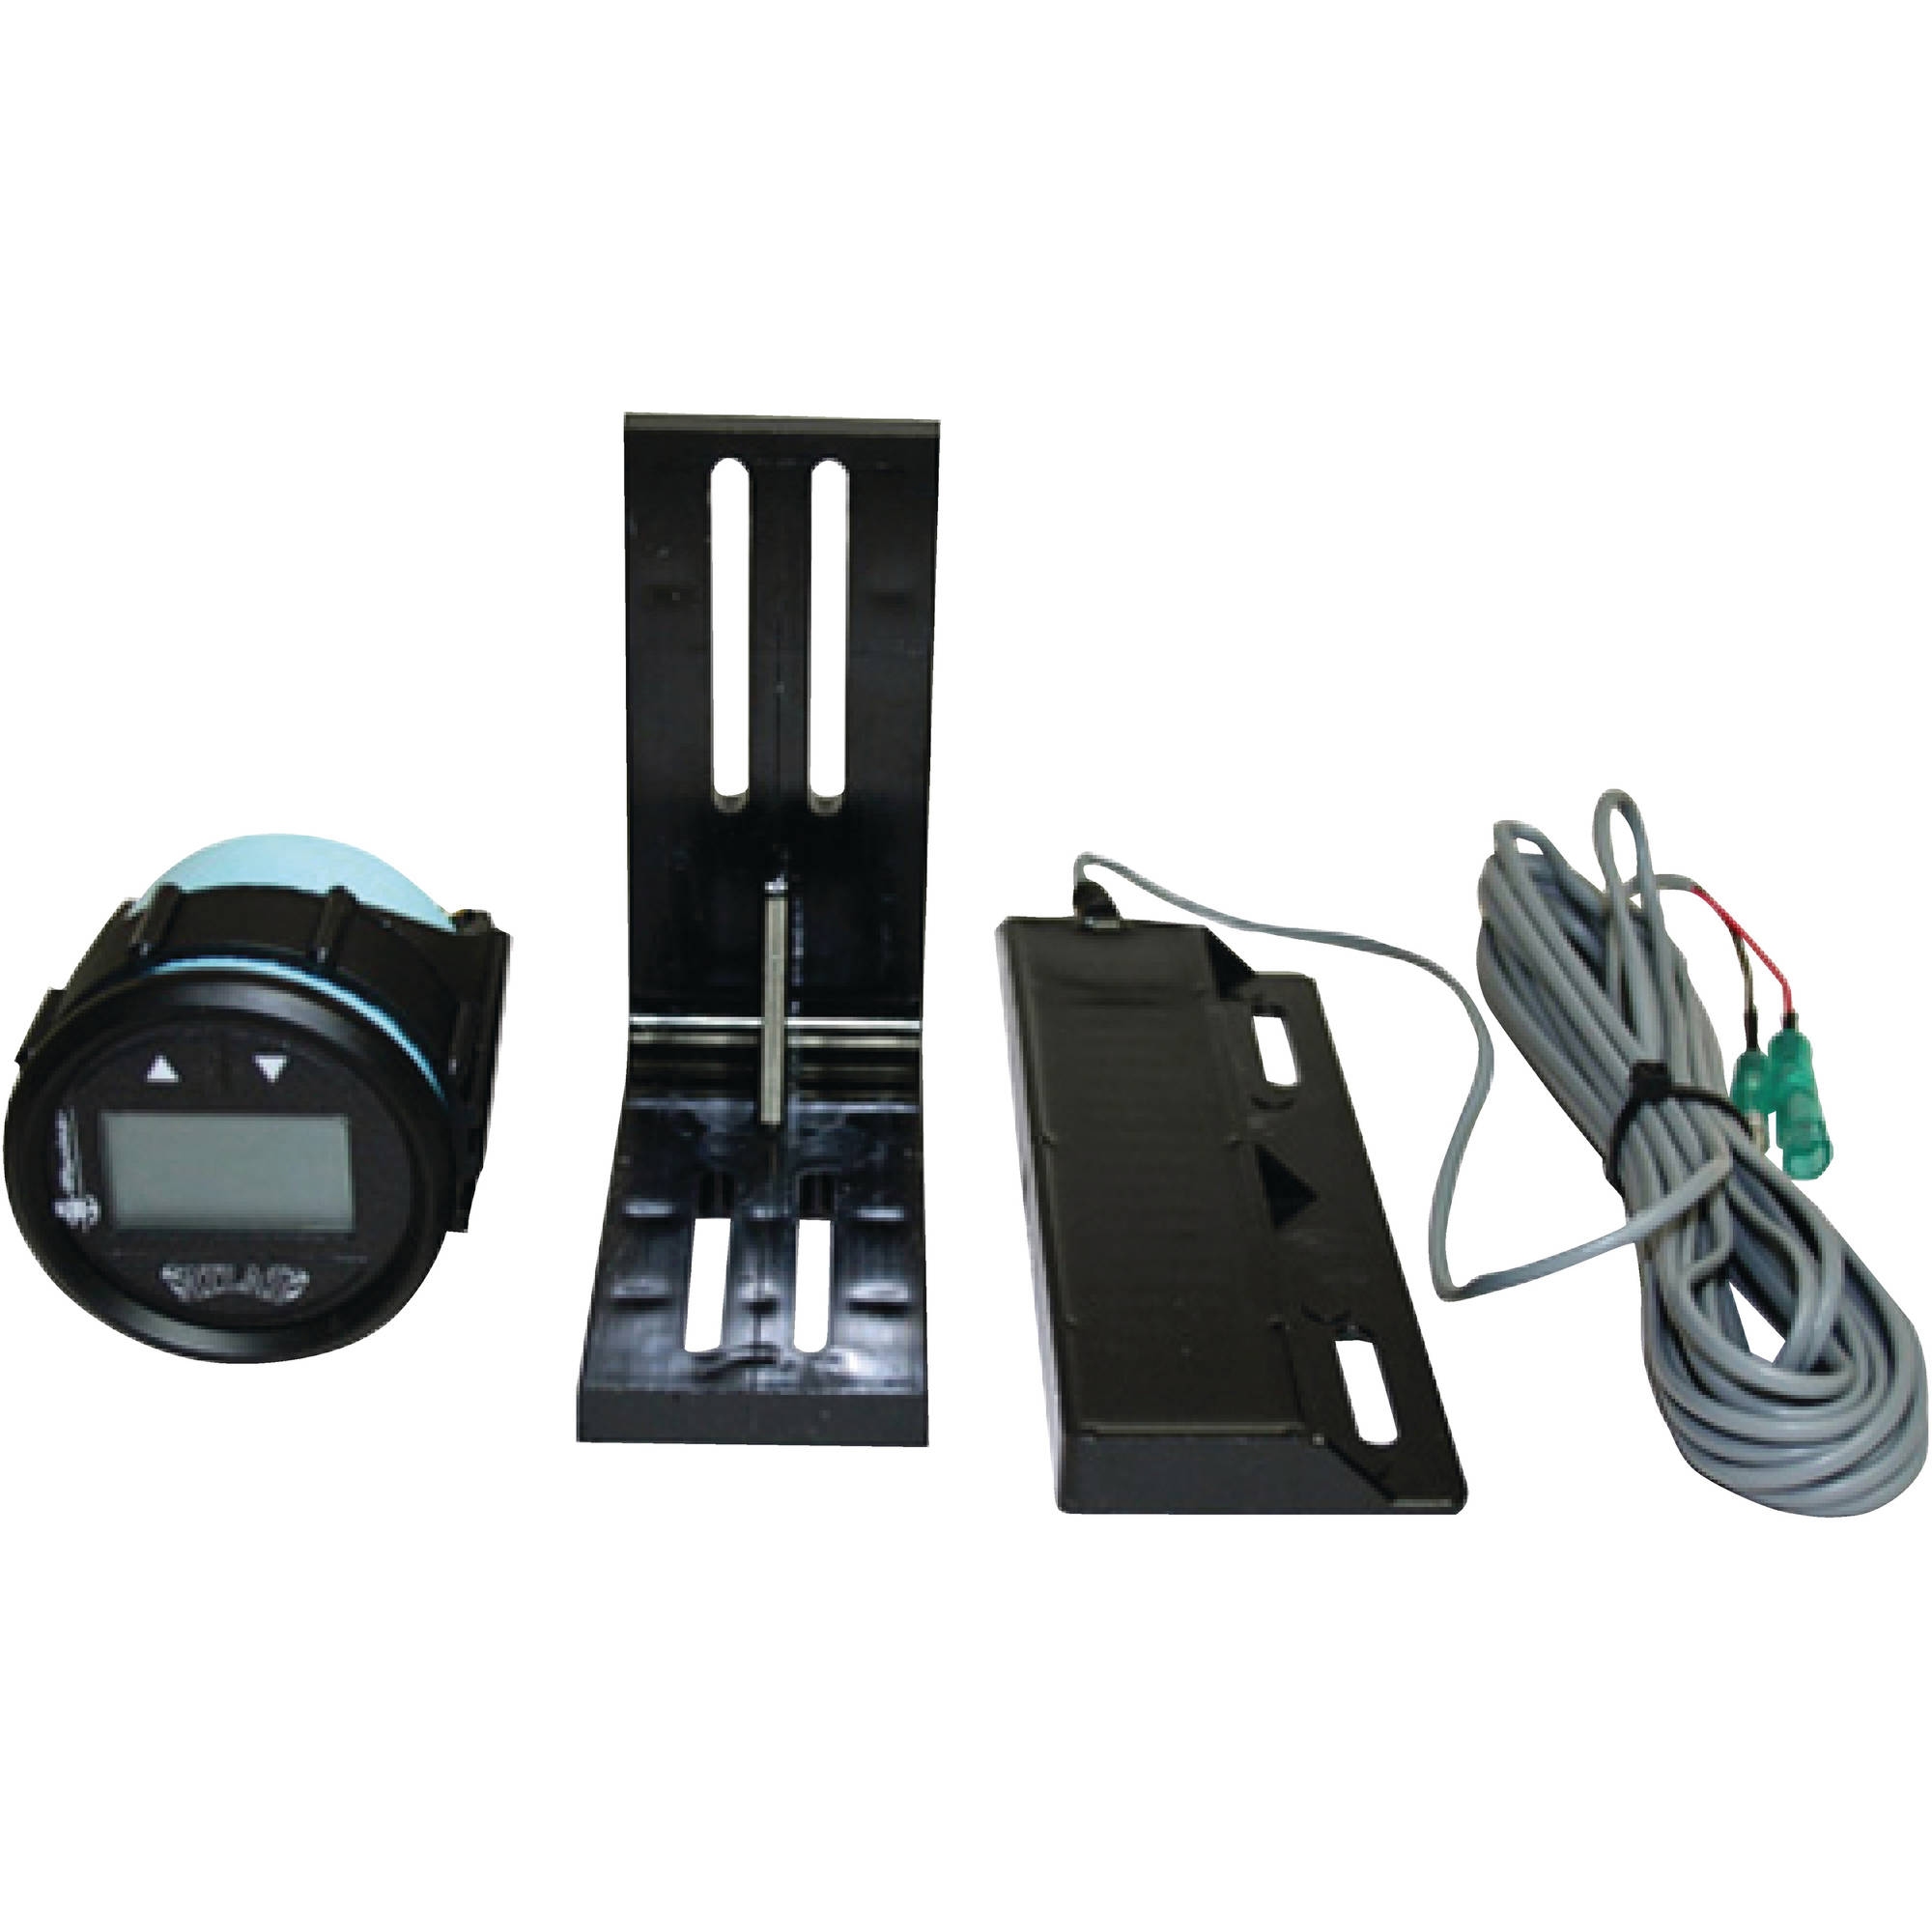 T-H Marine Atlas Series Digital Position Gauge Kit by T-H Marine Supplies